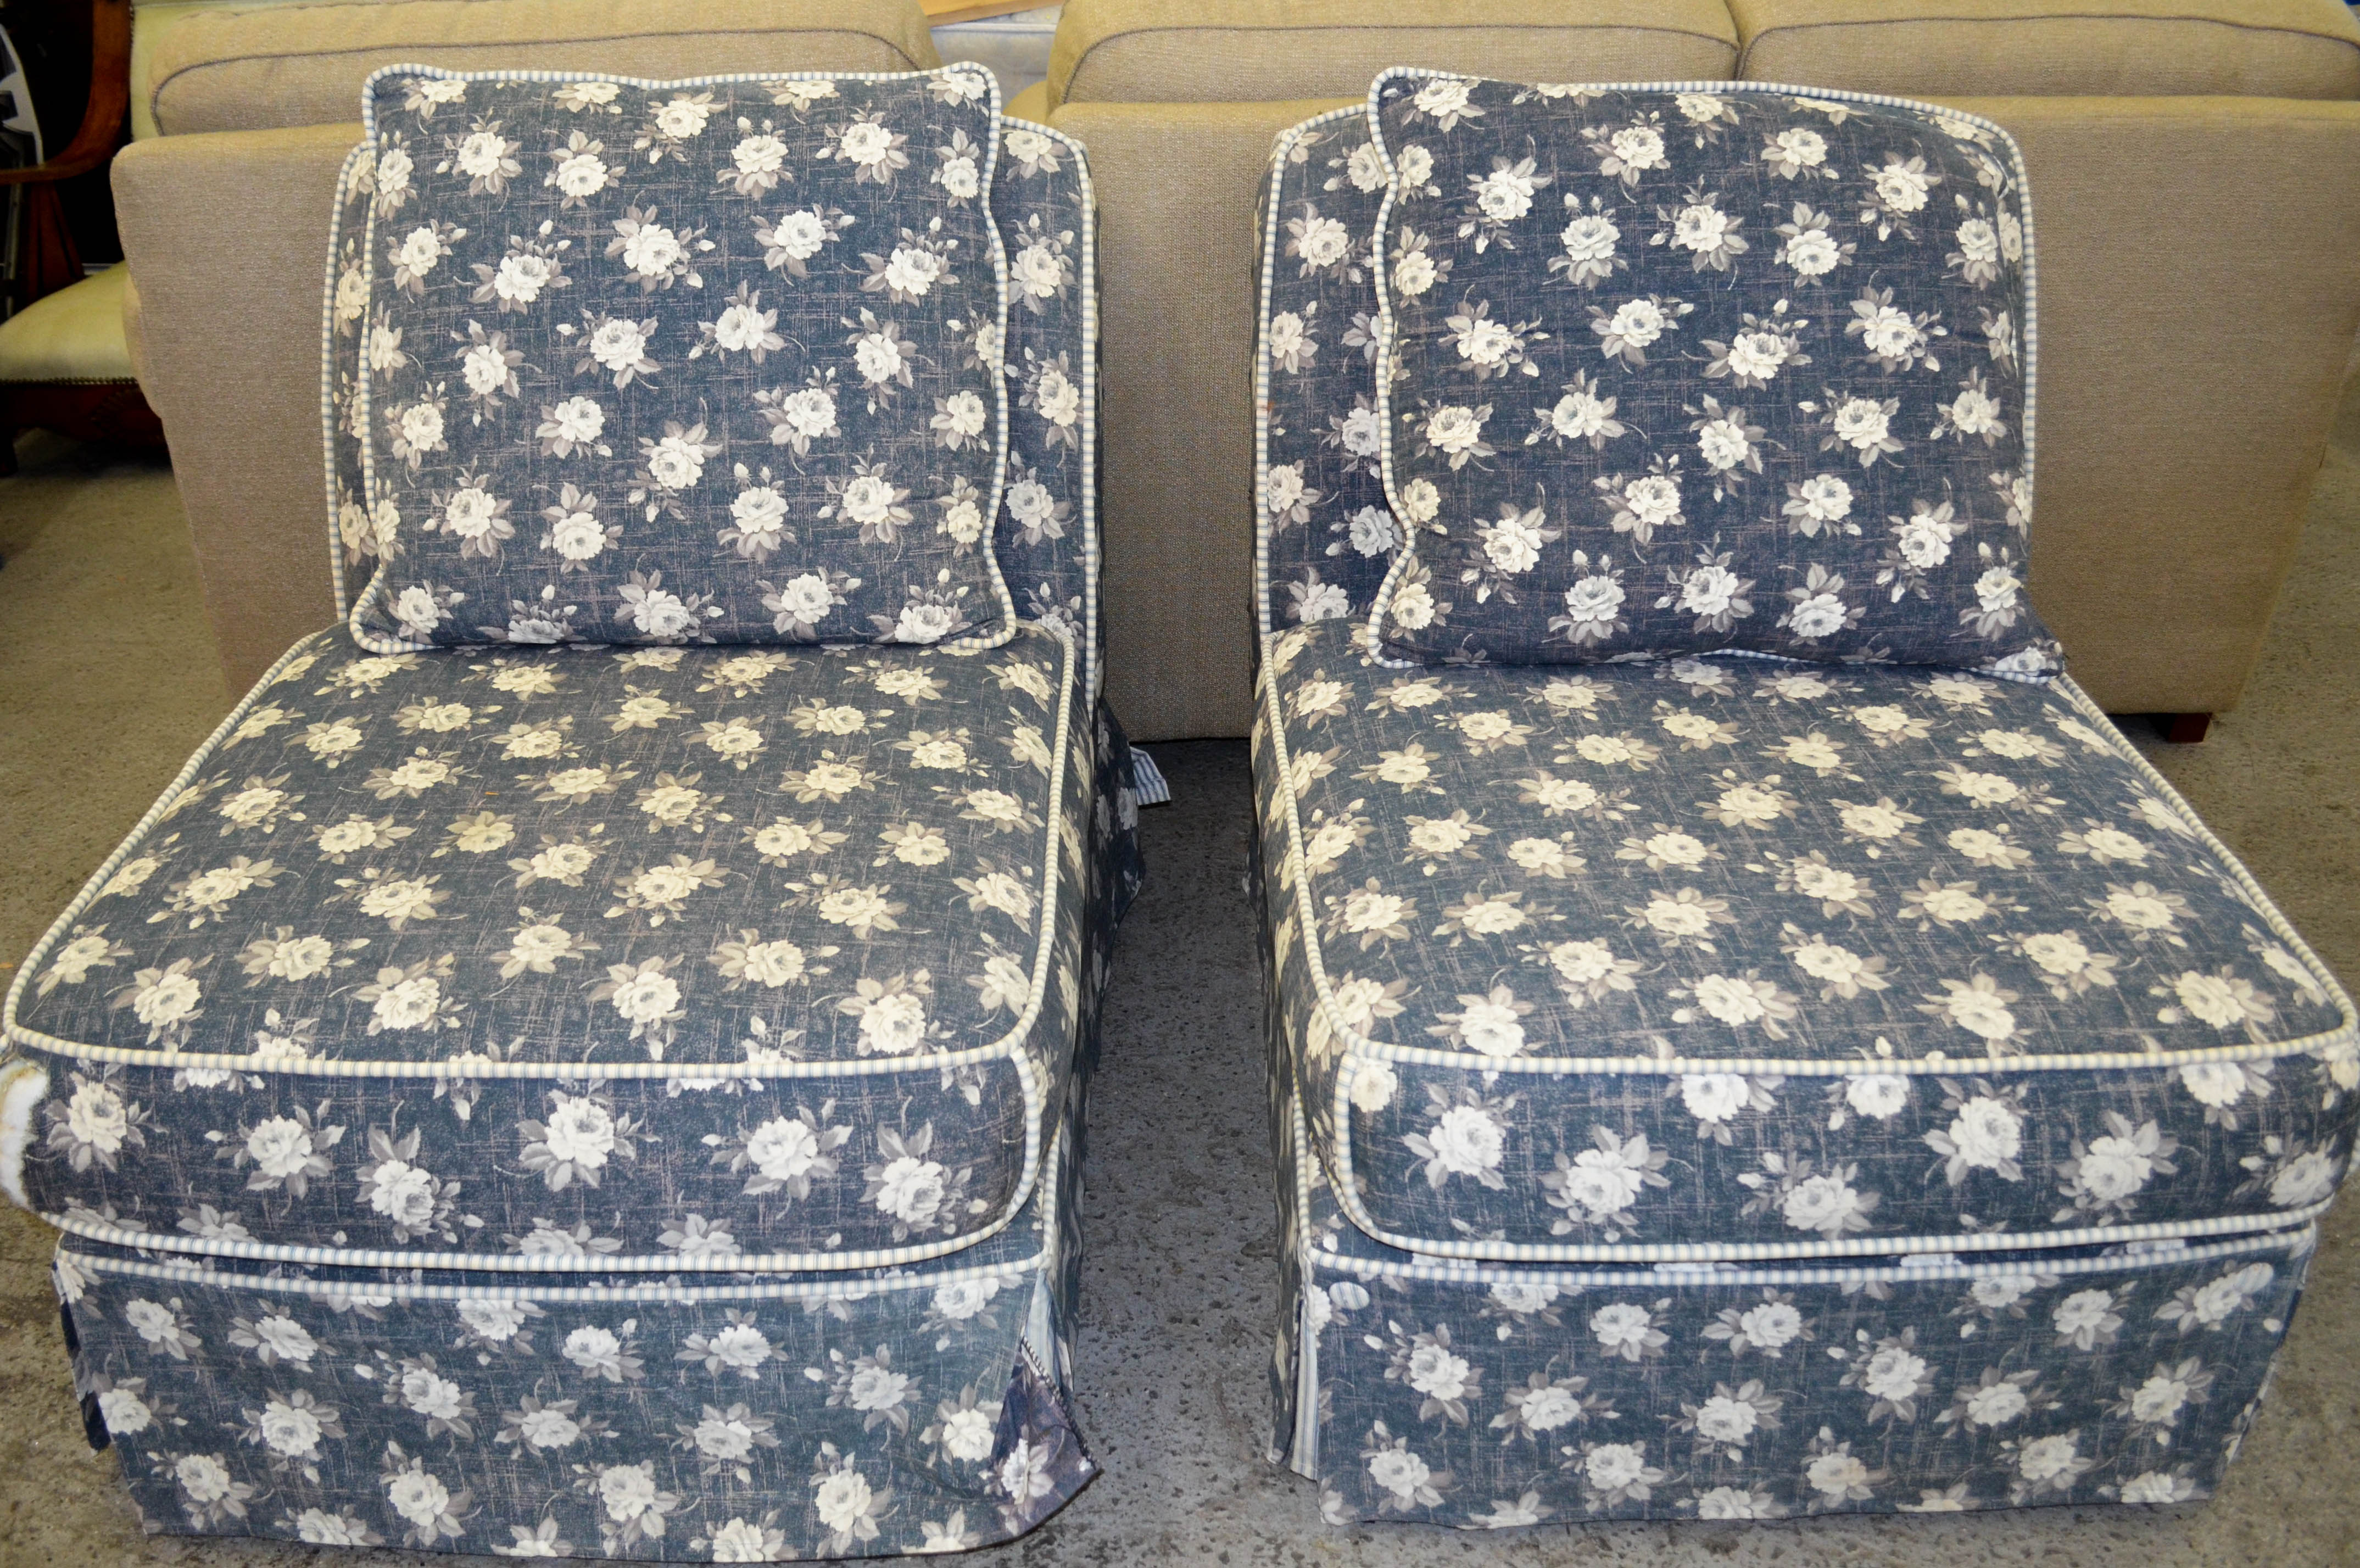 124 Blue and White Flower Chairs